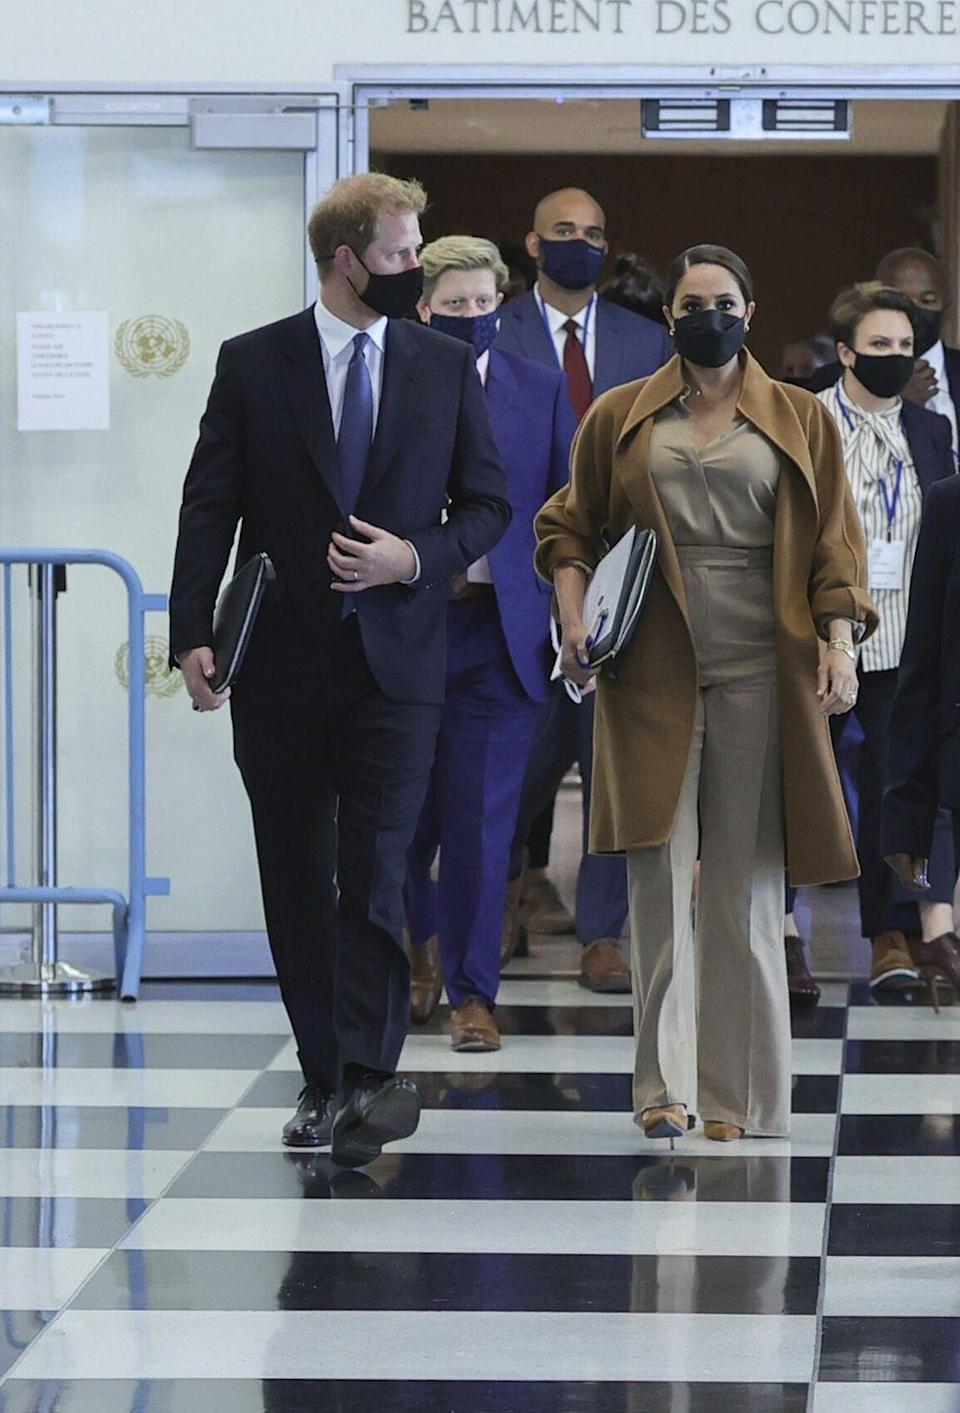 <p>The Duke and Duchess of Sussex visited the UN to meet with the UN deputy secretary-general Amina Mohammed. </p>